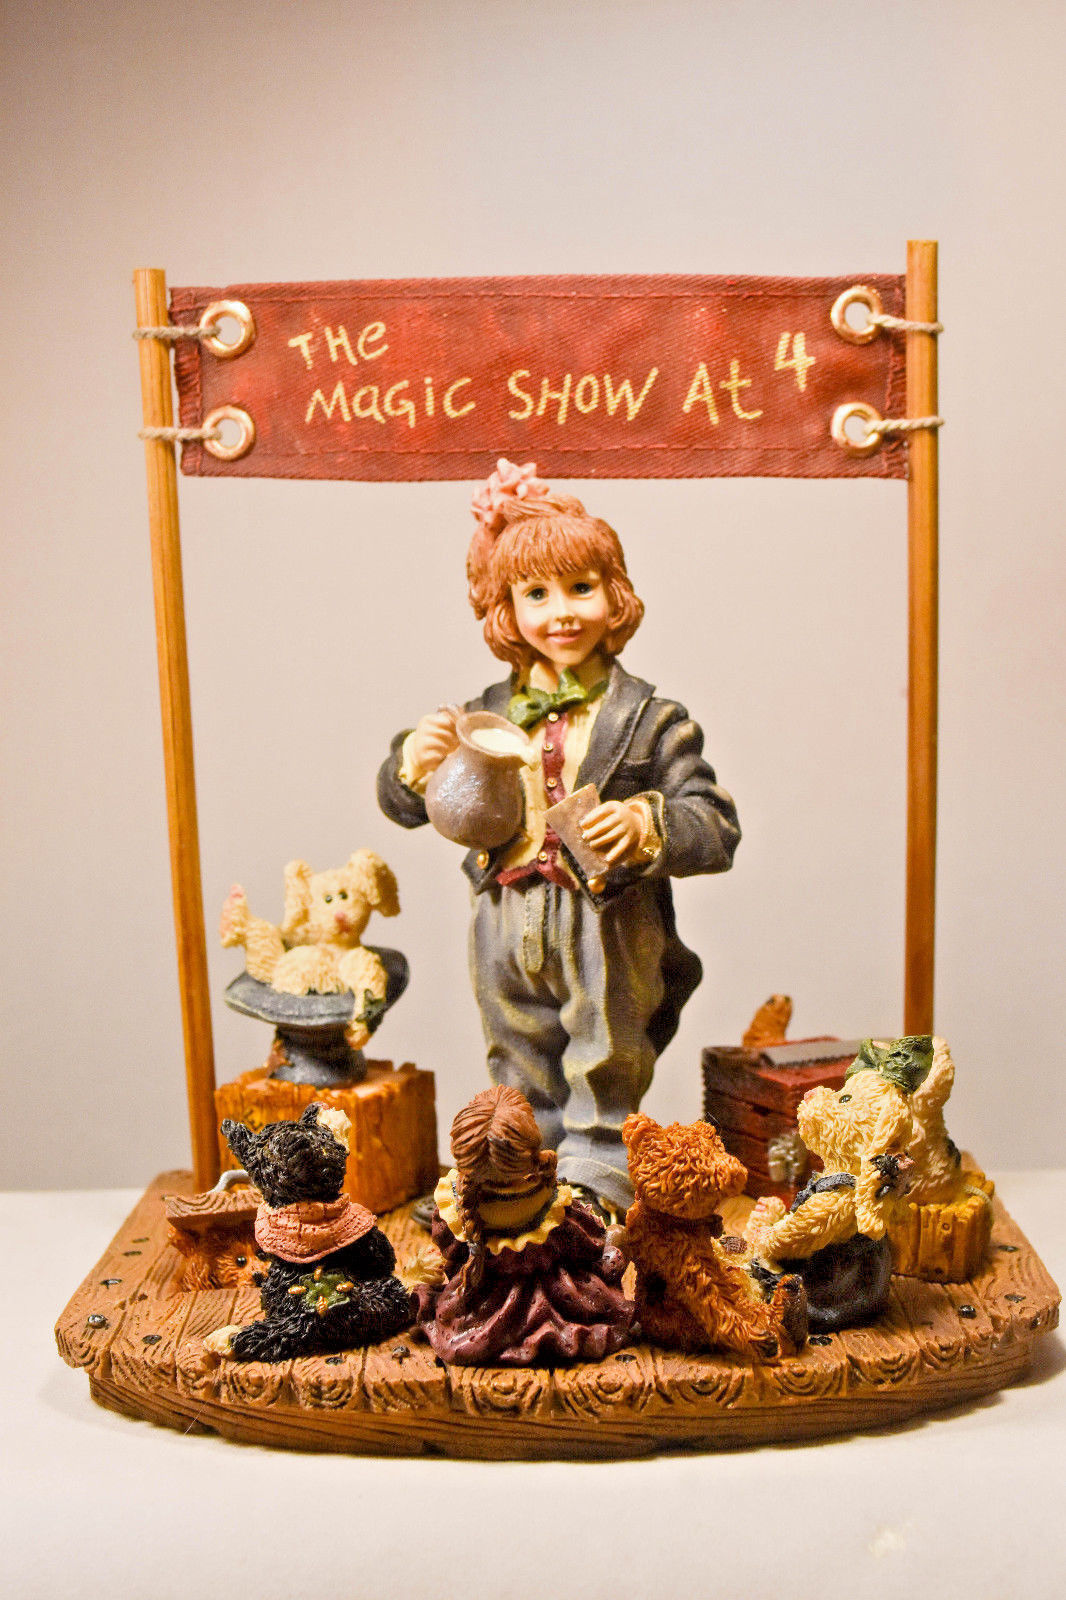 Boyds Bears: The Amazing Bailey... Magic Show at 4 - First Edition/3180 - #3518 image 1